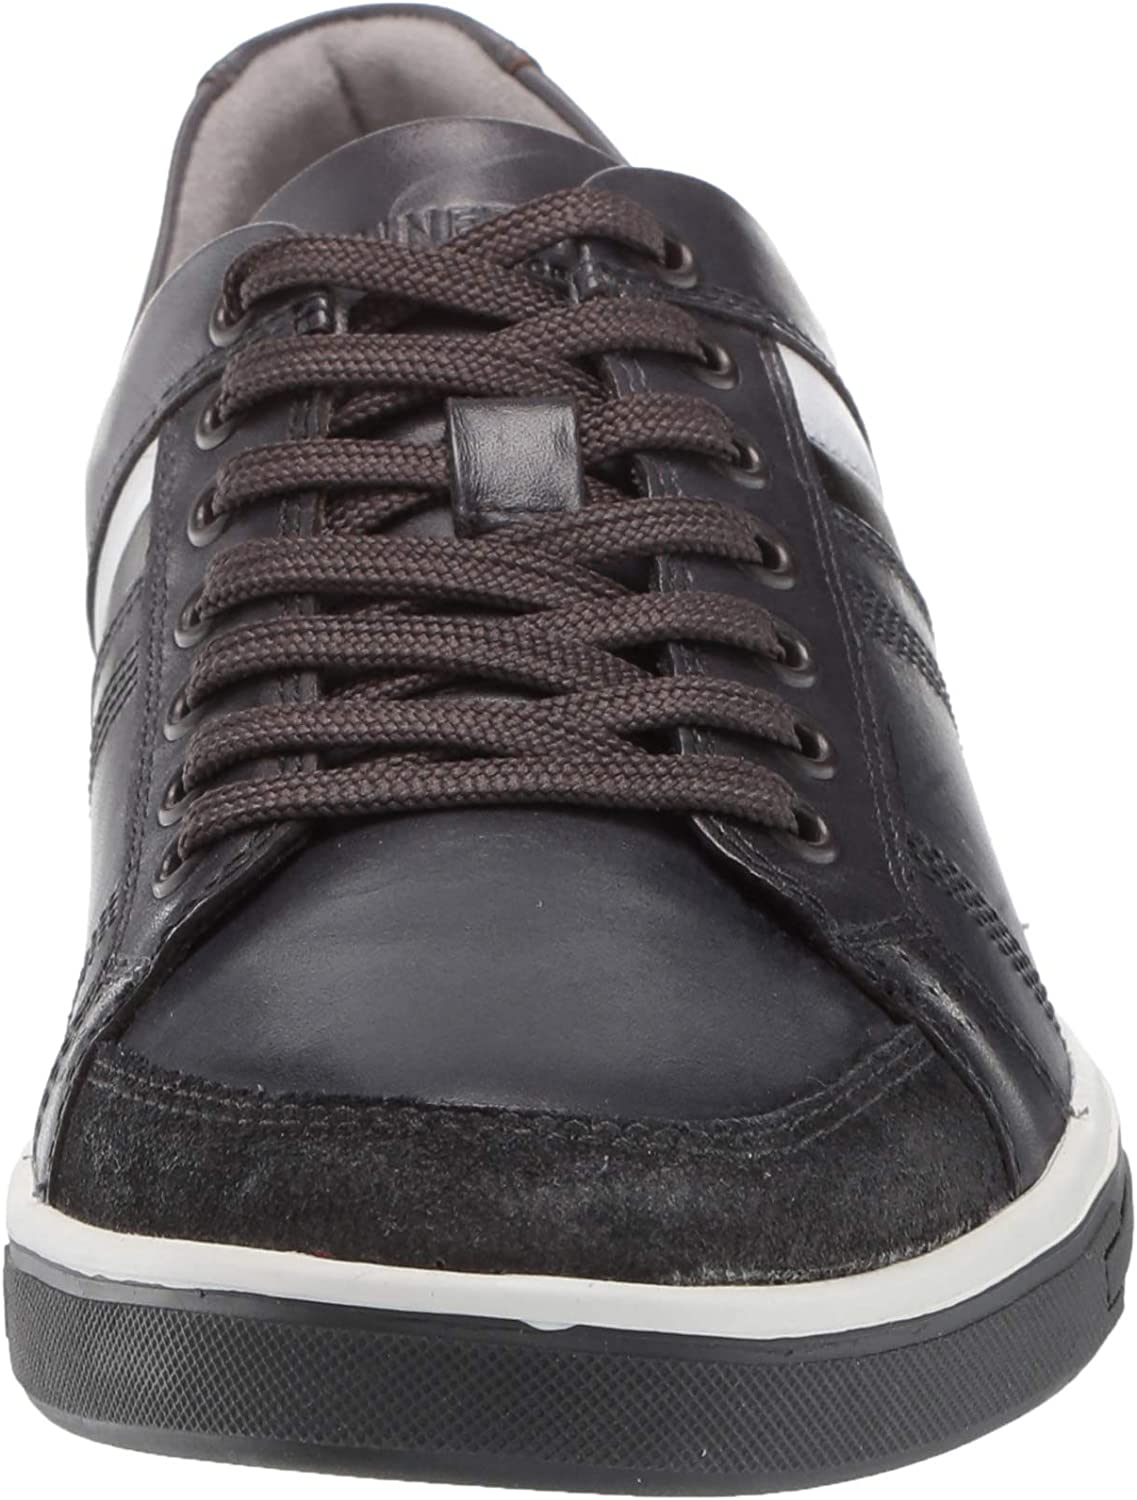 Kenneth Cole New York Initial Sneaker, Baskets Initial. Homme Gris Foncé